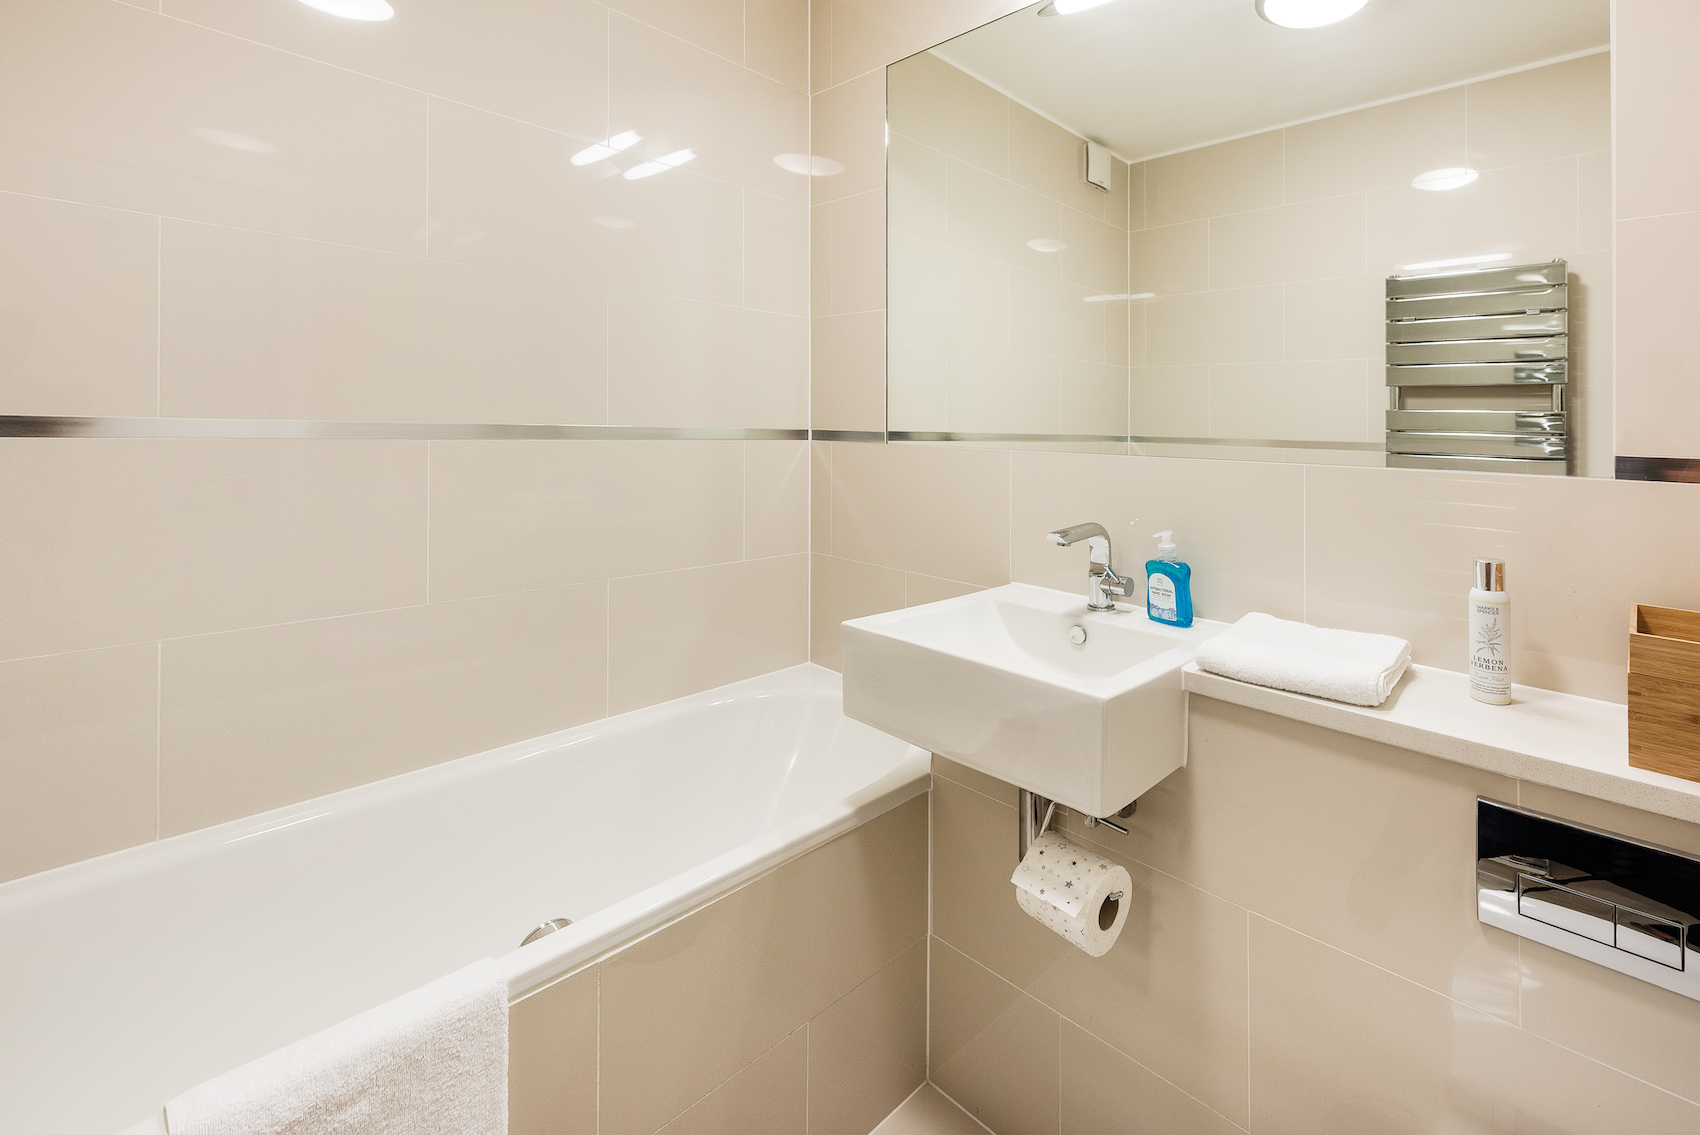 Bath at Short Gardens Apartment, Covent Garden, London - Citybase Apartments